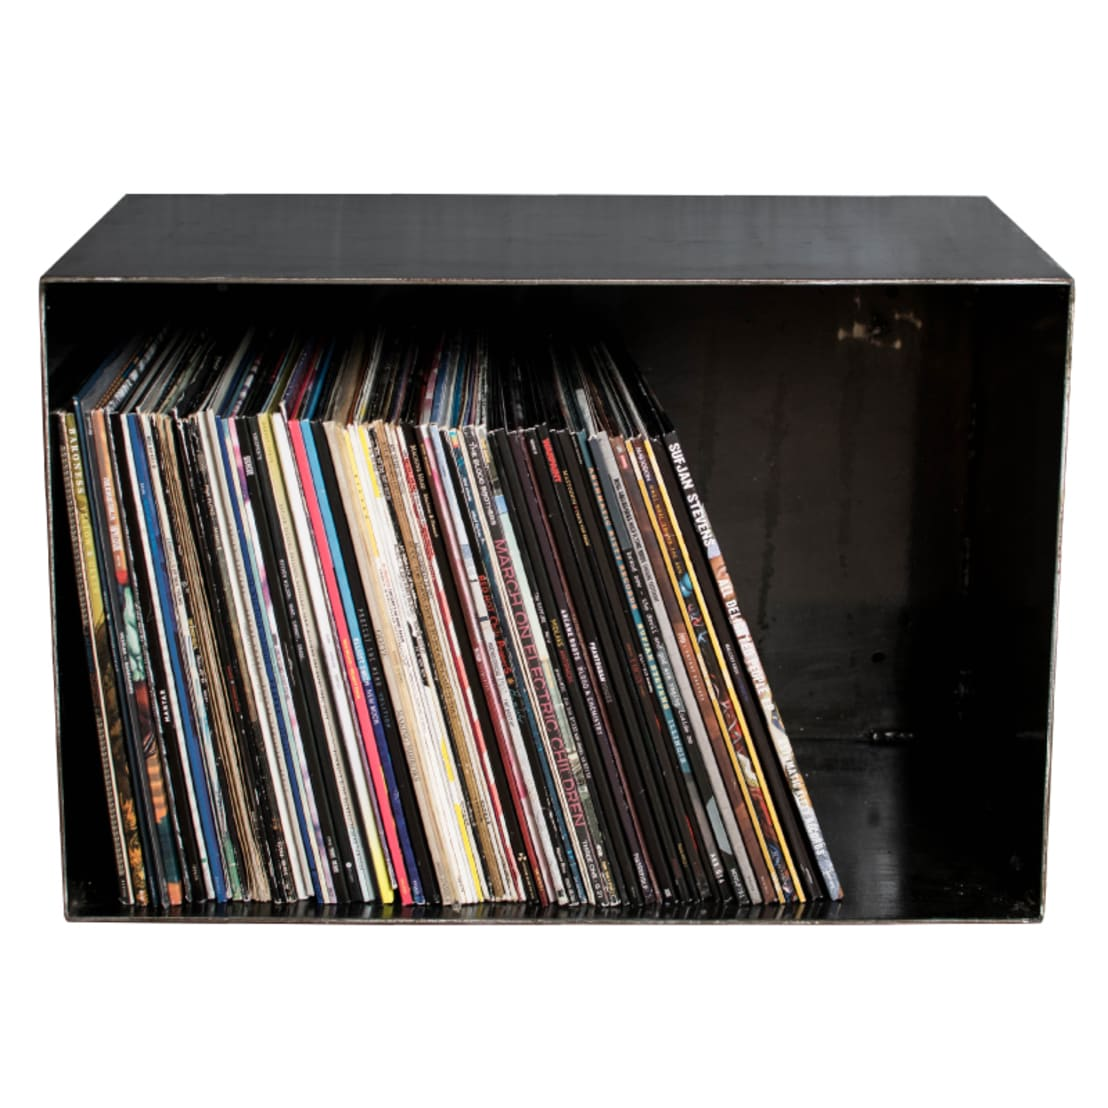 vinyl schallplatten regal lp rack f r 100 lps 4mm stahl industrie design rohstahl. Black Bedroom Furniture Sets. Home Design Ideas